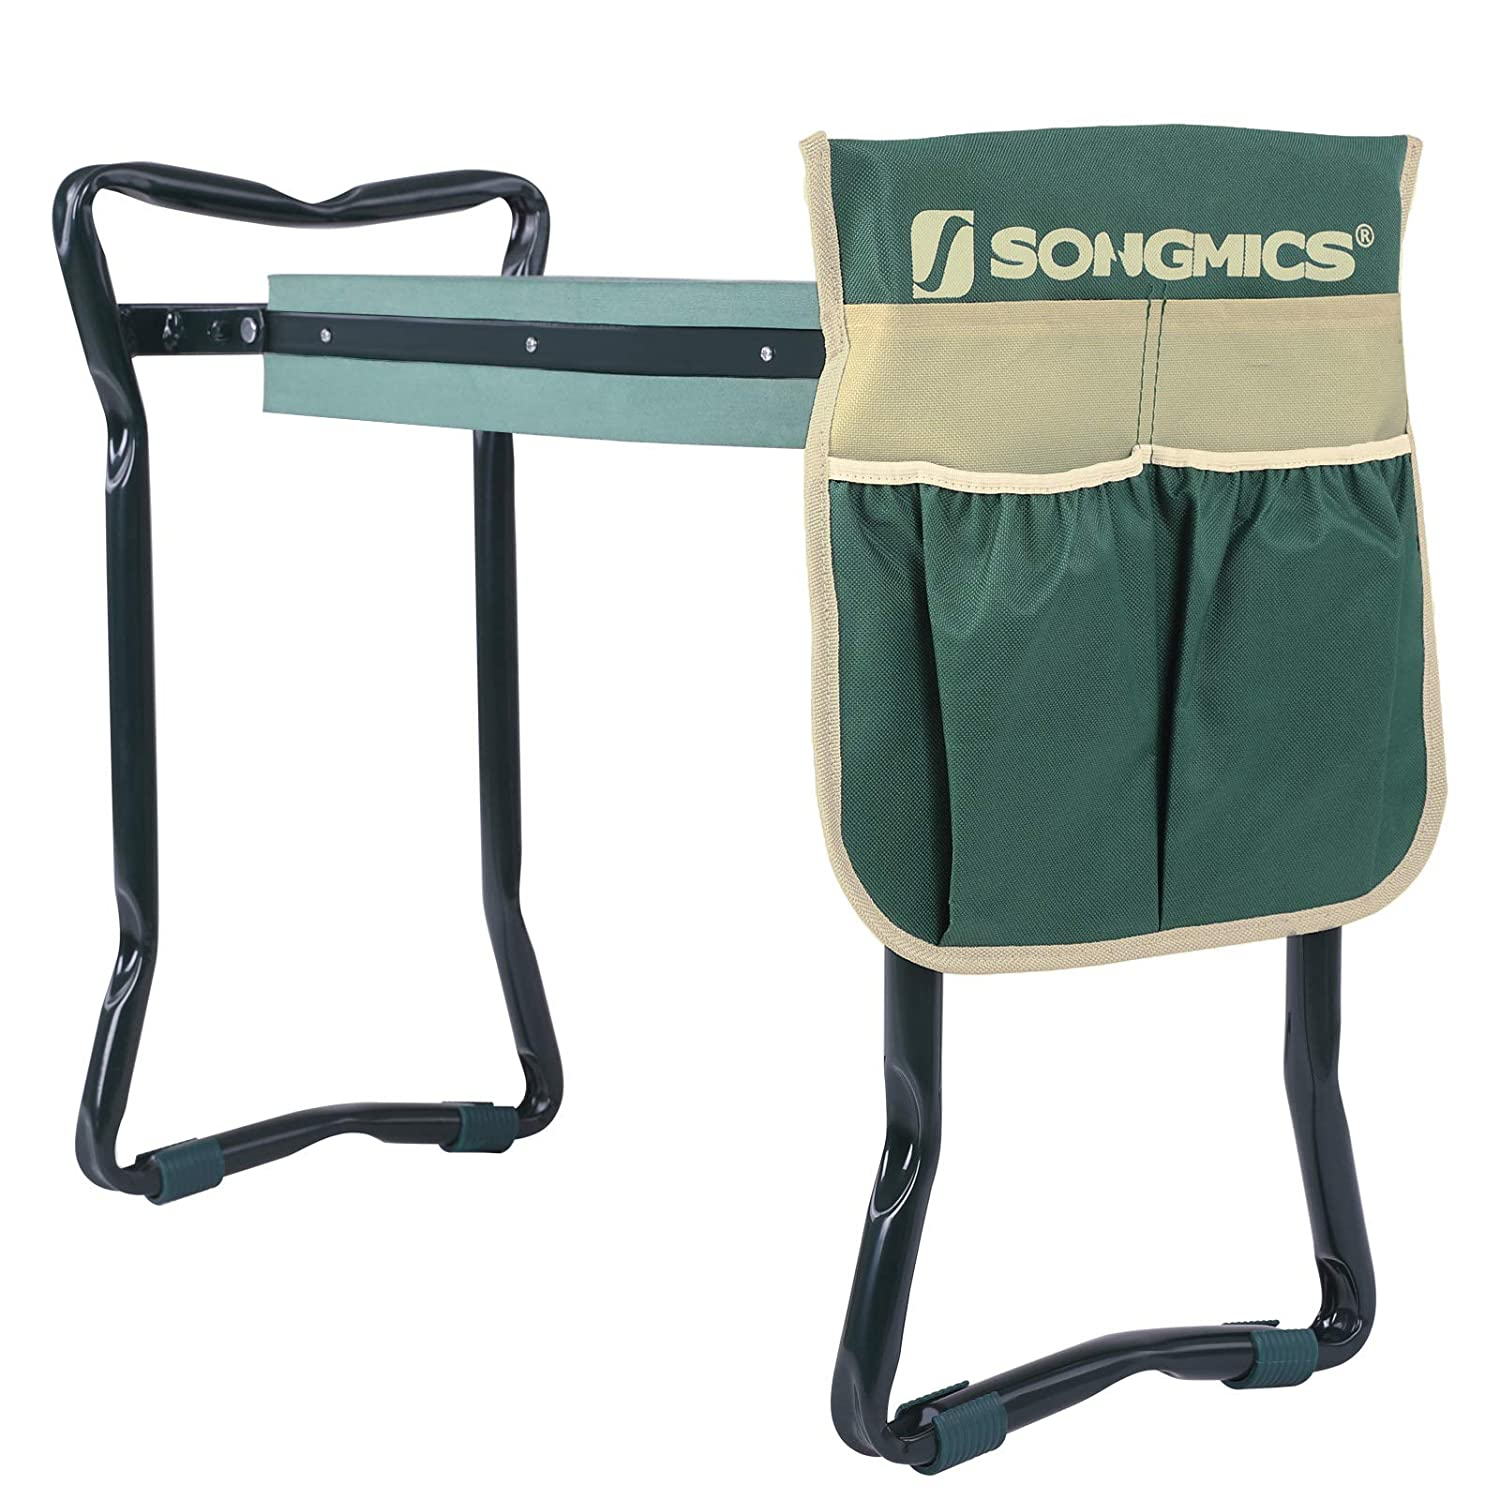 Admirable Songmics Foldable Kneeler And Garden Seat Portable Stool Cjindustries Chair Design For Home Cjindustriesco